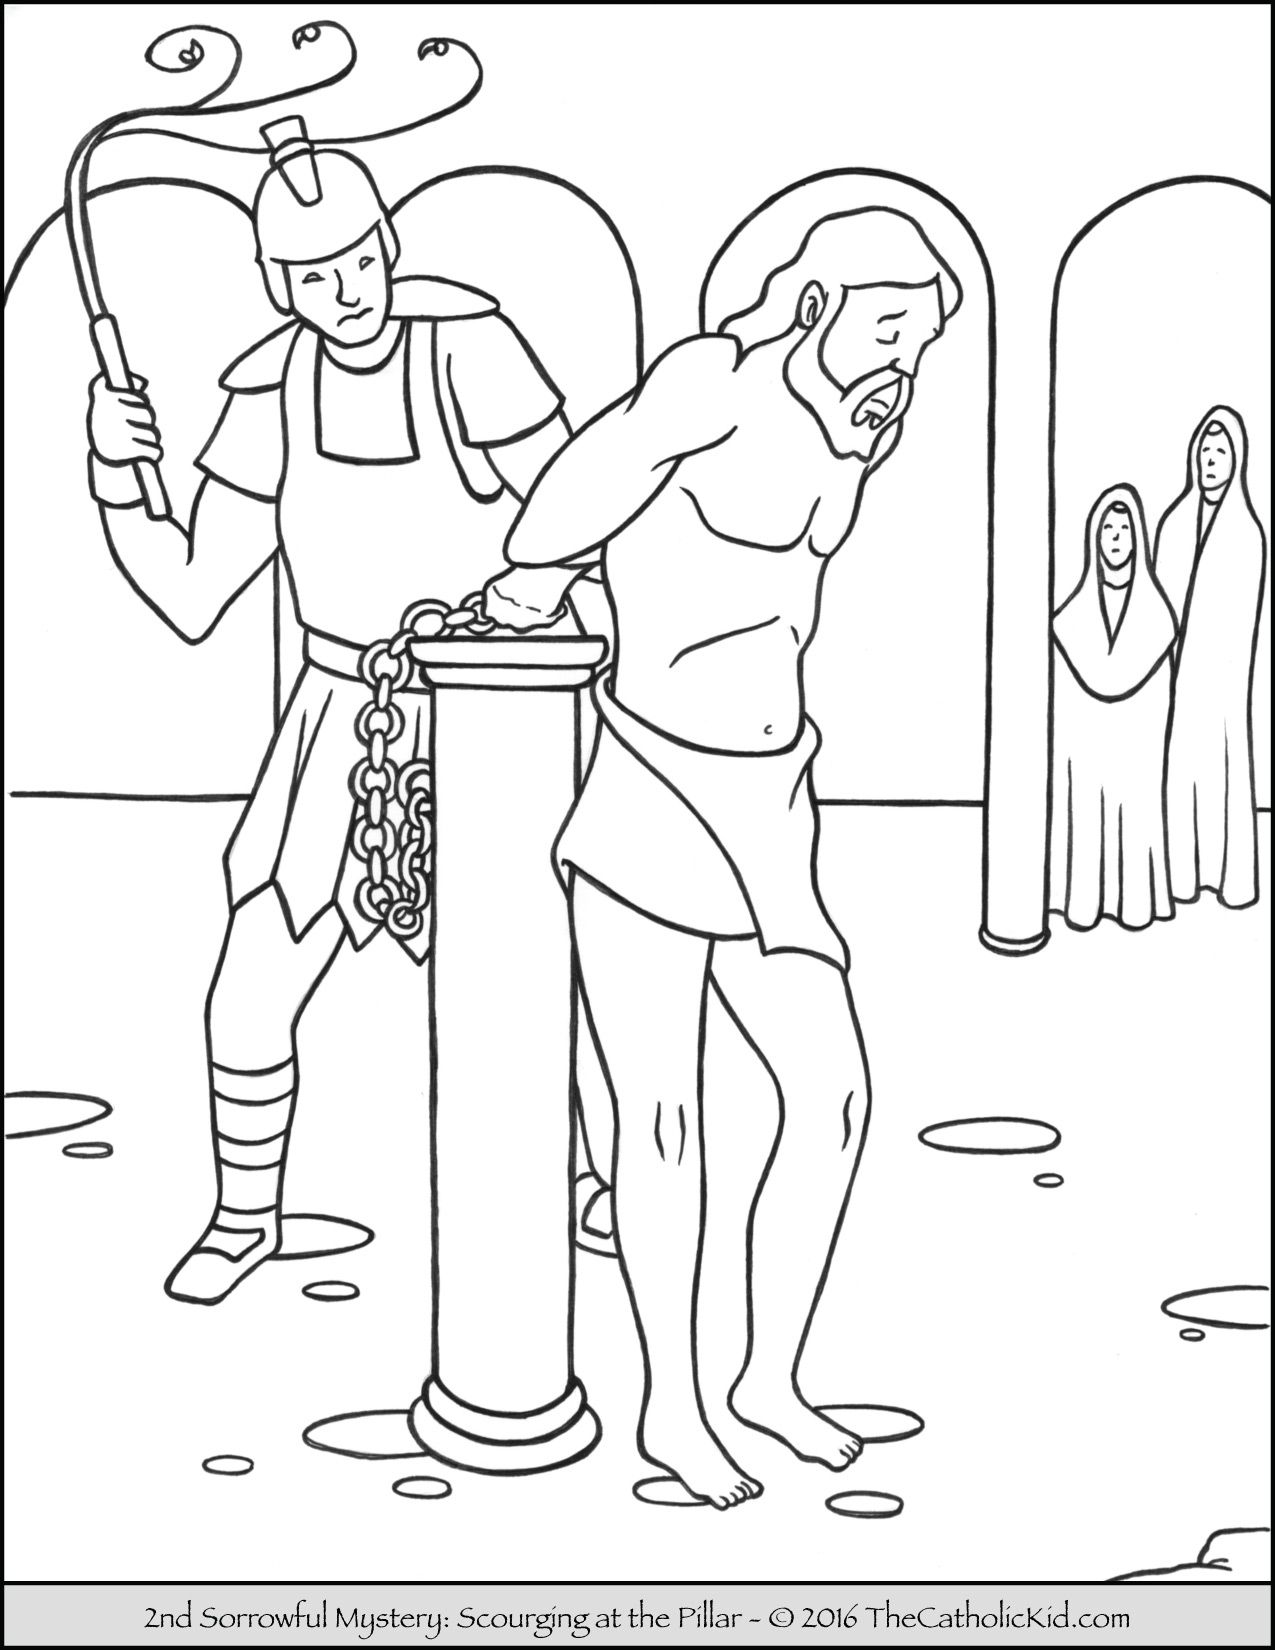 Sorrowful Mysteries Coloring Pages The Catholic Kid Catholic Kids